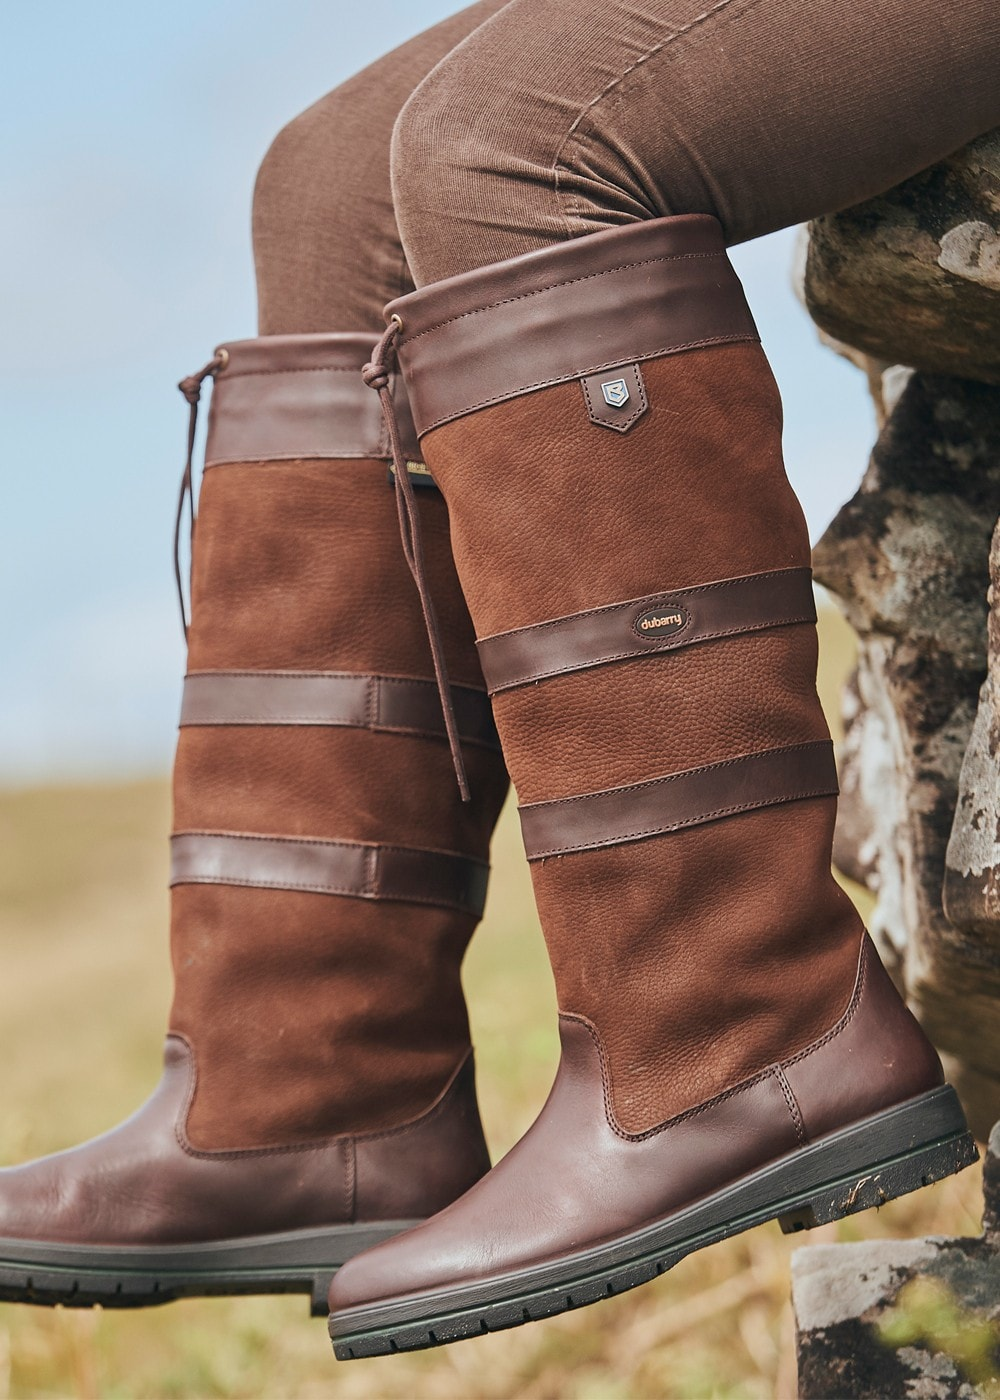 Dubarry Galway Boots- A Hume